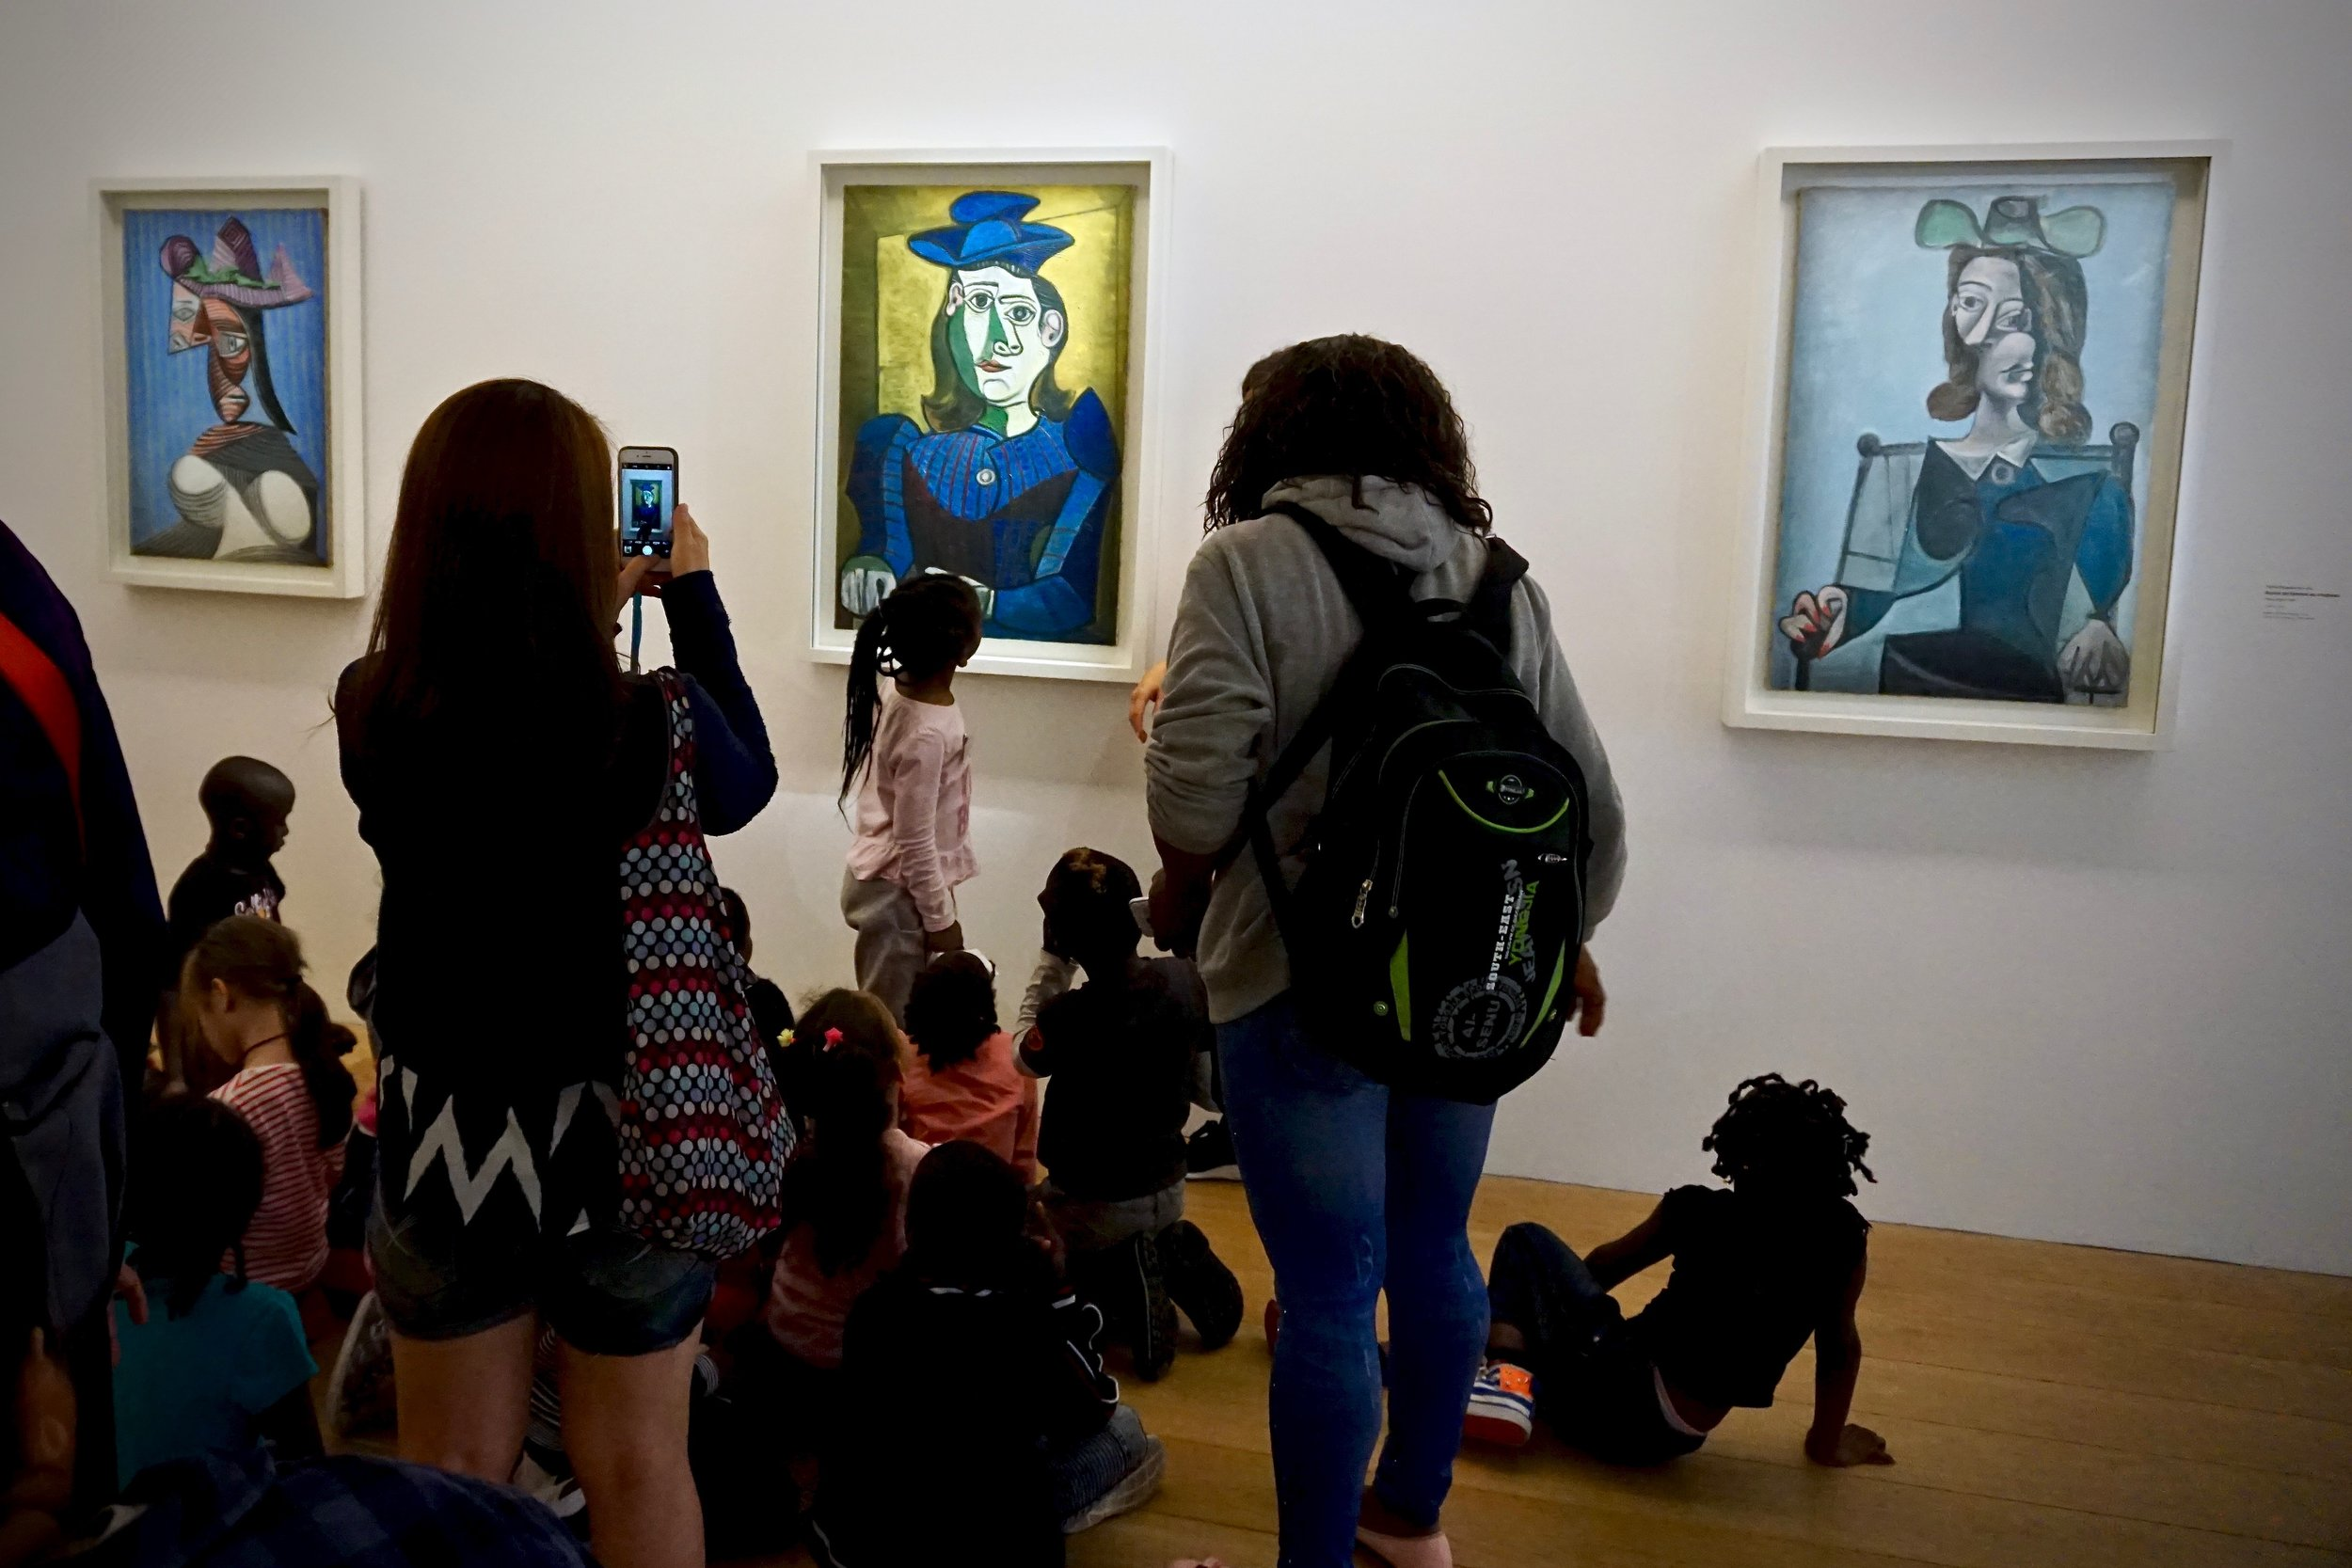 French school children receiving art education at the Musée national Picasso